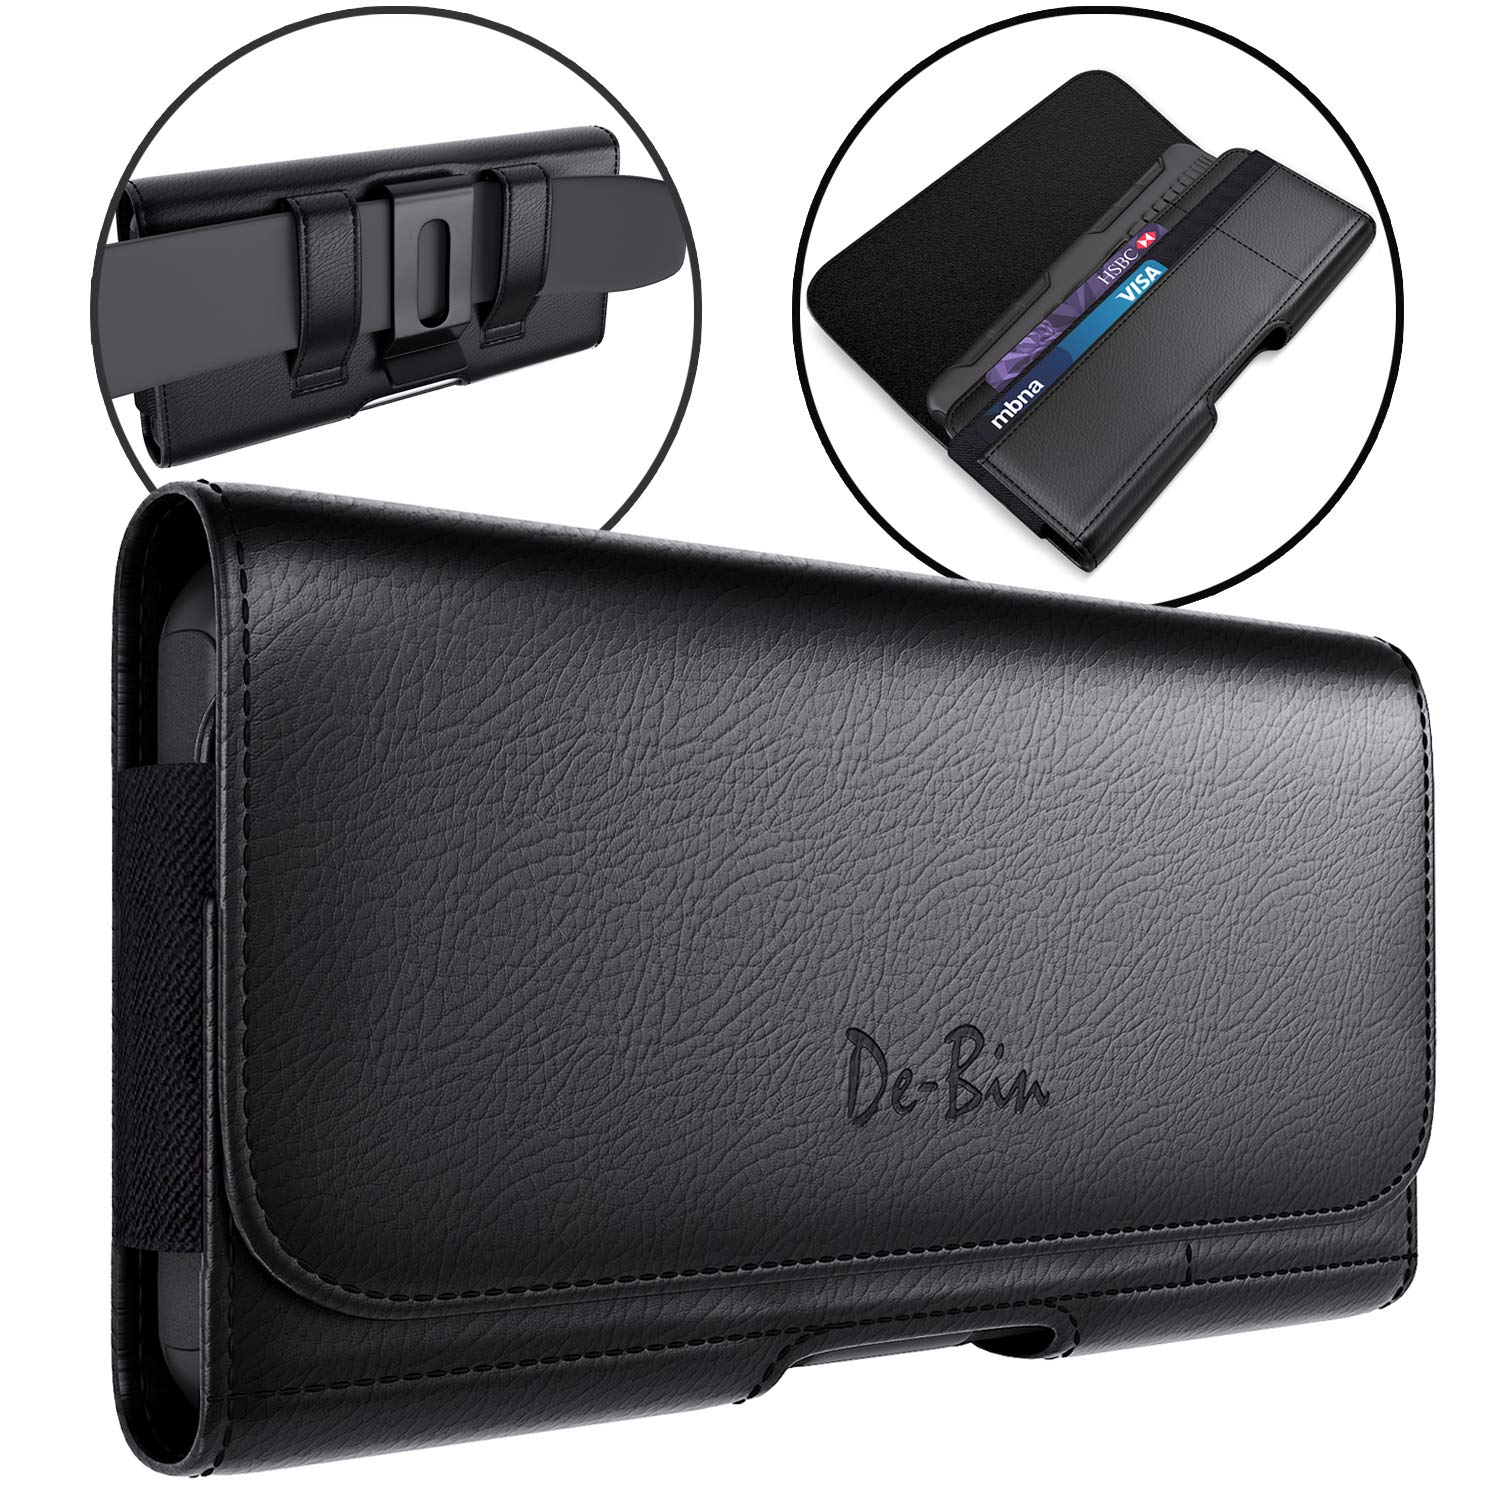 De-Bin Galaxy Note 8 9 10+ Plus Holster, Leather Belt Case with Clip Cell Phone Pouch Belt Holder for Samsung Galaxy Note 8/9 / 10+ Plus Built-in ID Card Holder (Fits Phone w/Other Case on) by De-Bin